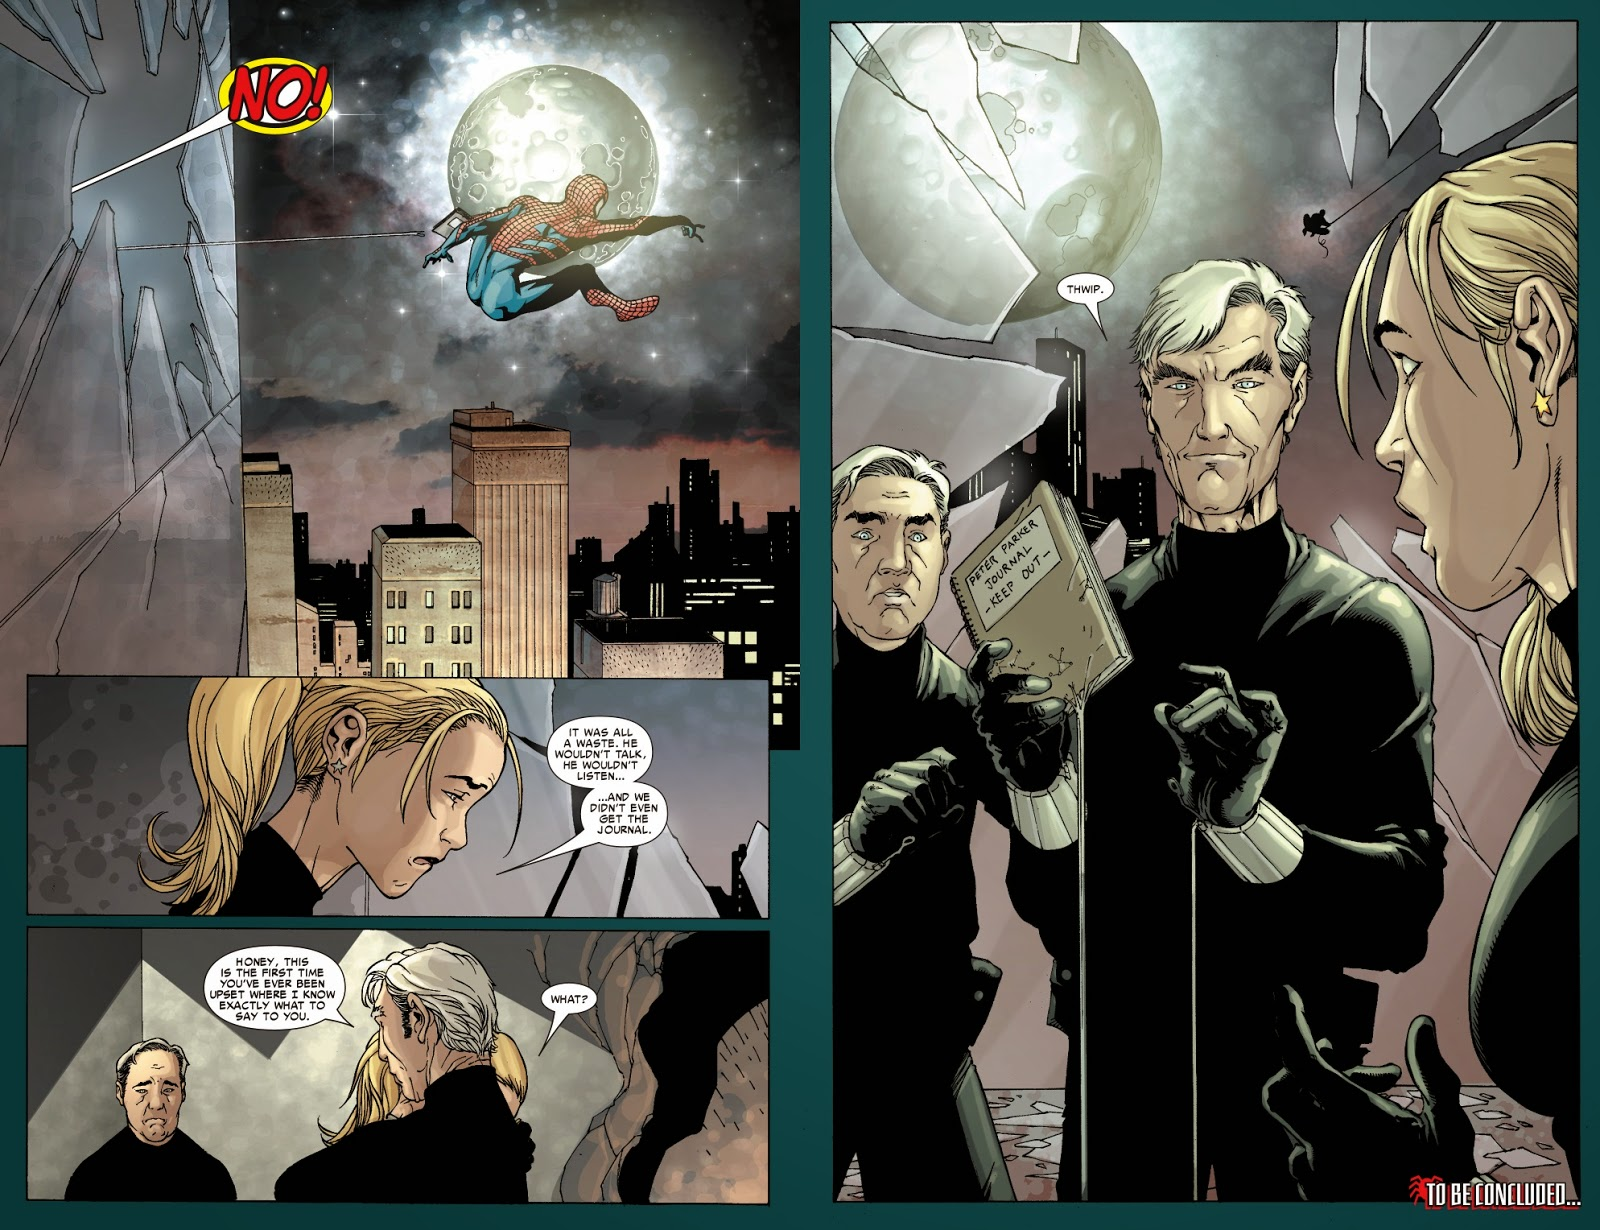 House of m green goblin - The Way I Read That First Picture And Because There S That Giant No It Looked Like They Were Trying To Web Shoot Spider Man And Because Of The State